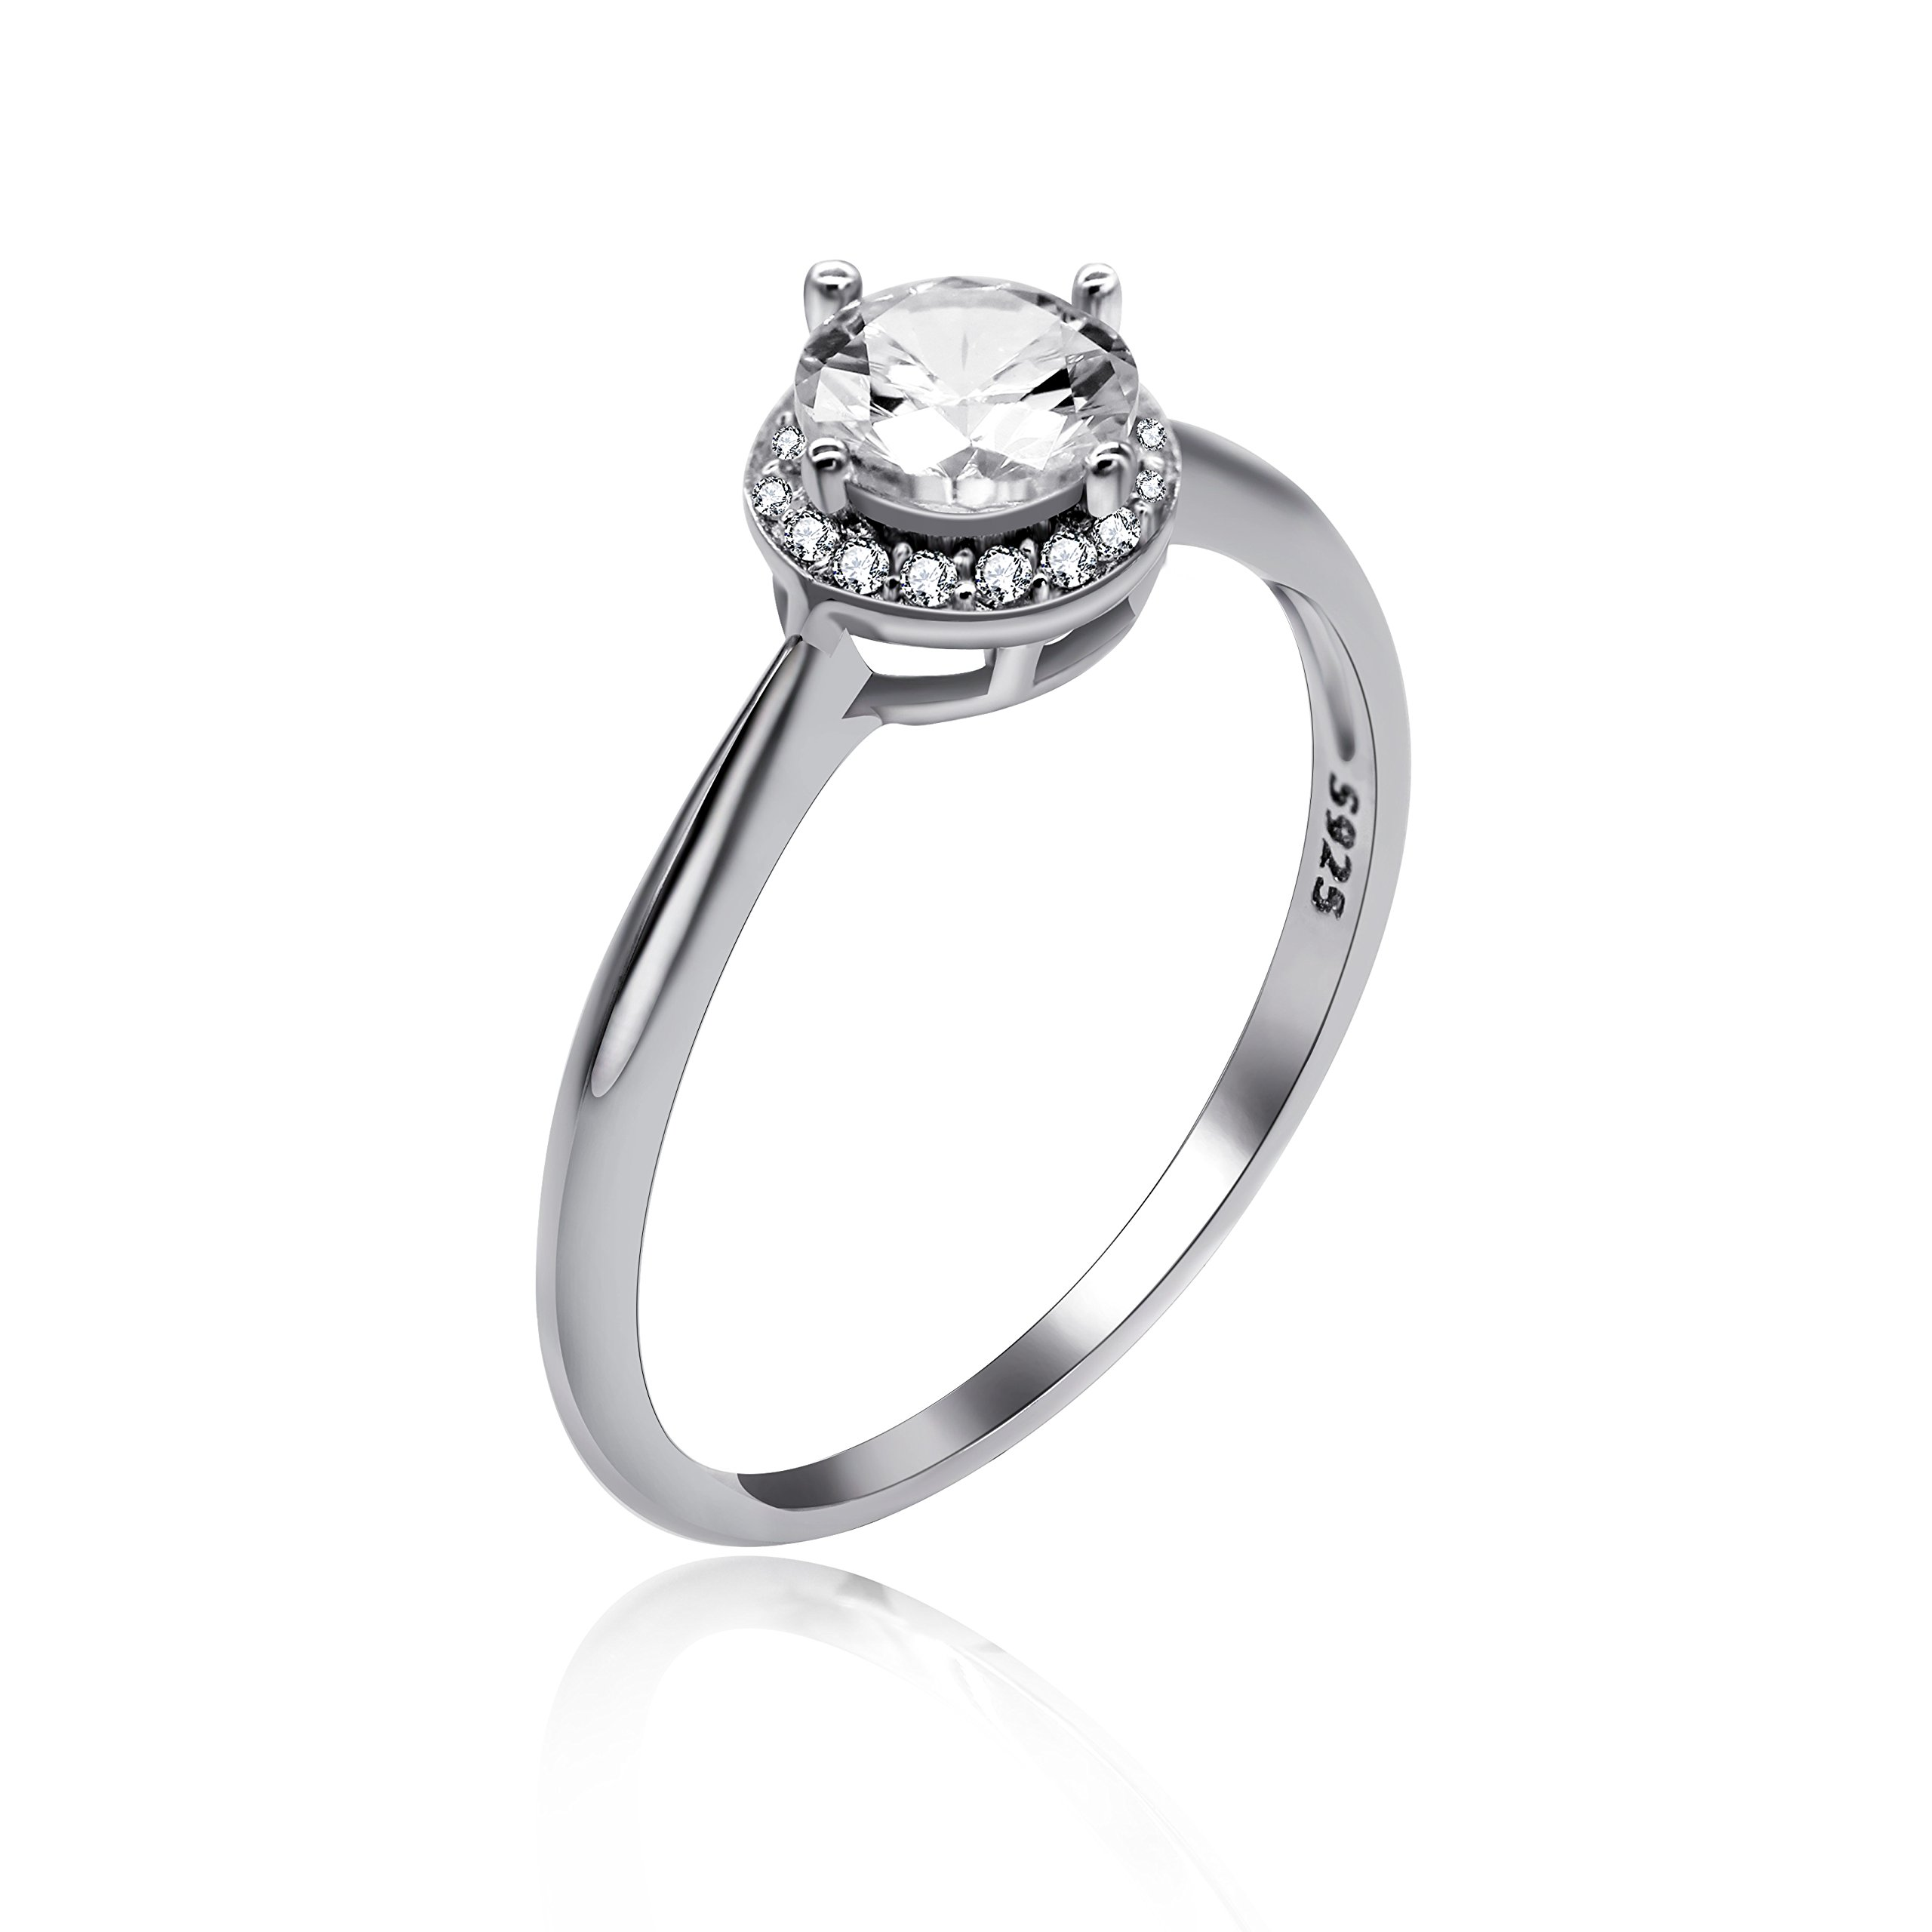 Uloveido Round Brilliant Cubic Zirconia CZ Sterling Silver 925 Wedding Engagement Ring, Ring for Mom 1.54g Size 9 LJ045